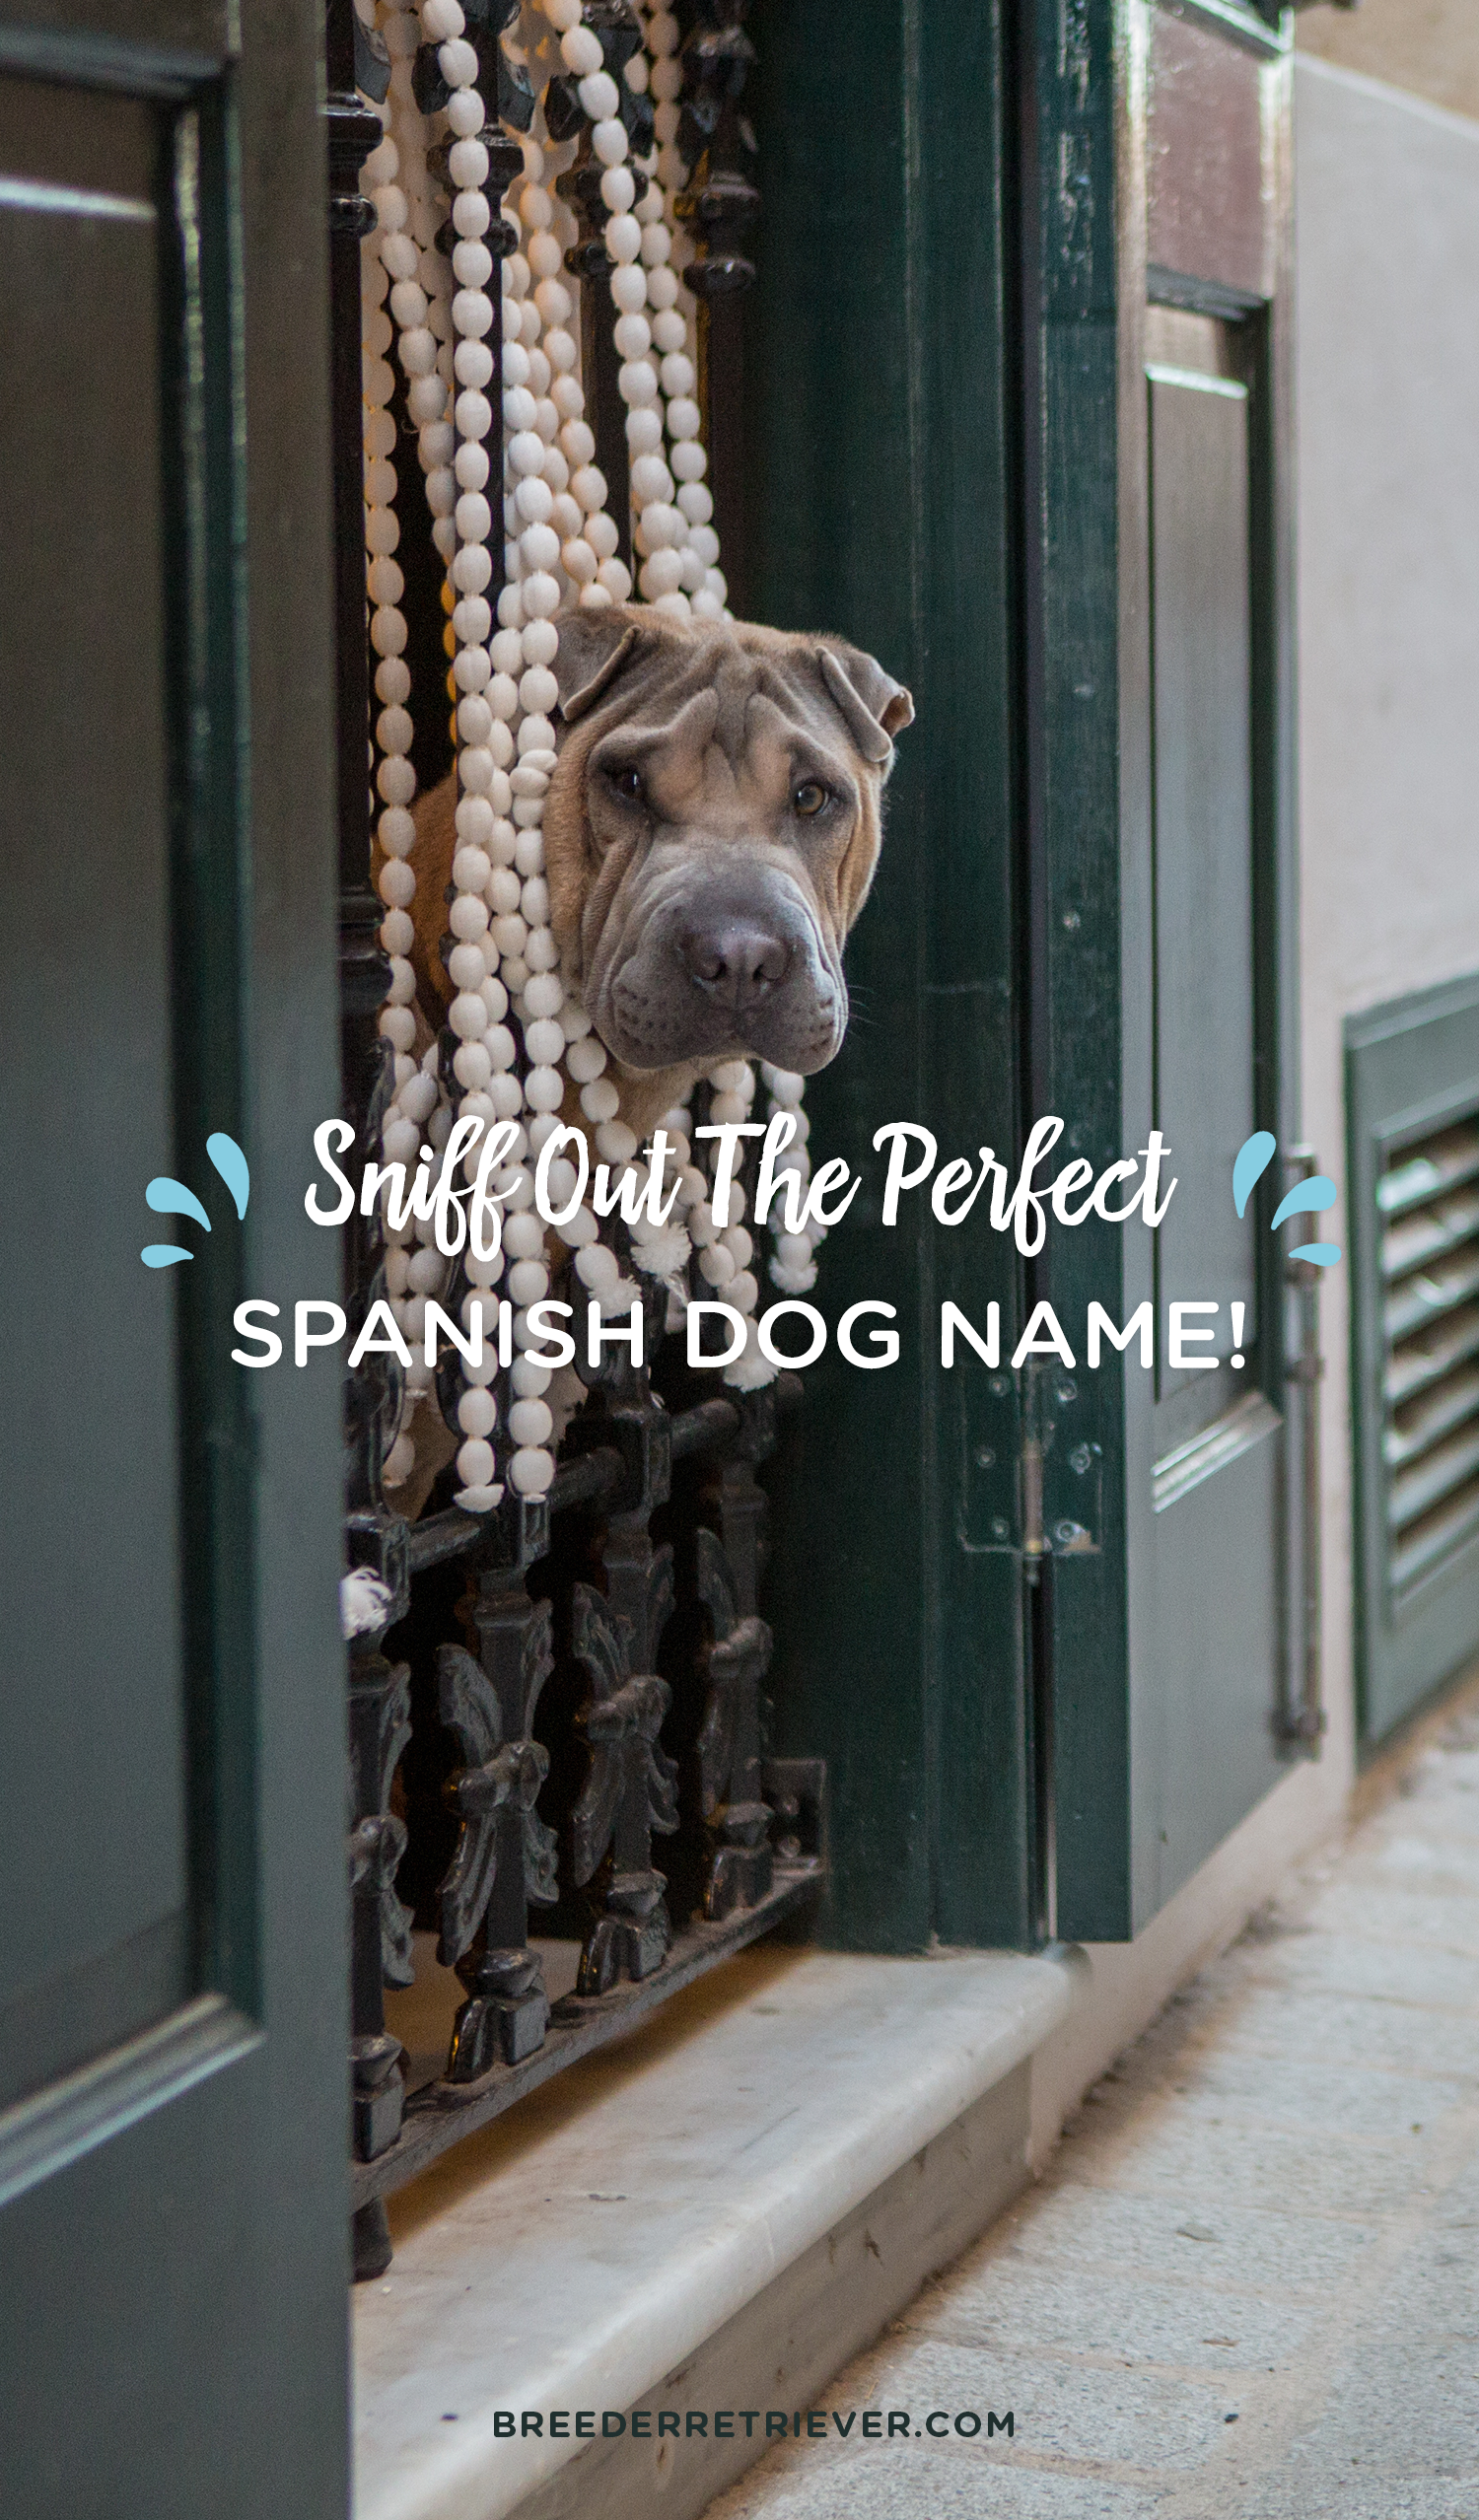 Sniff out the perfect Spanish dog name with this random